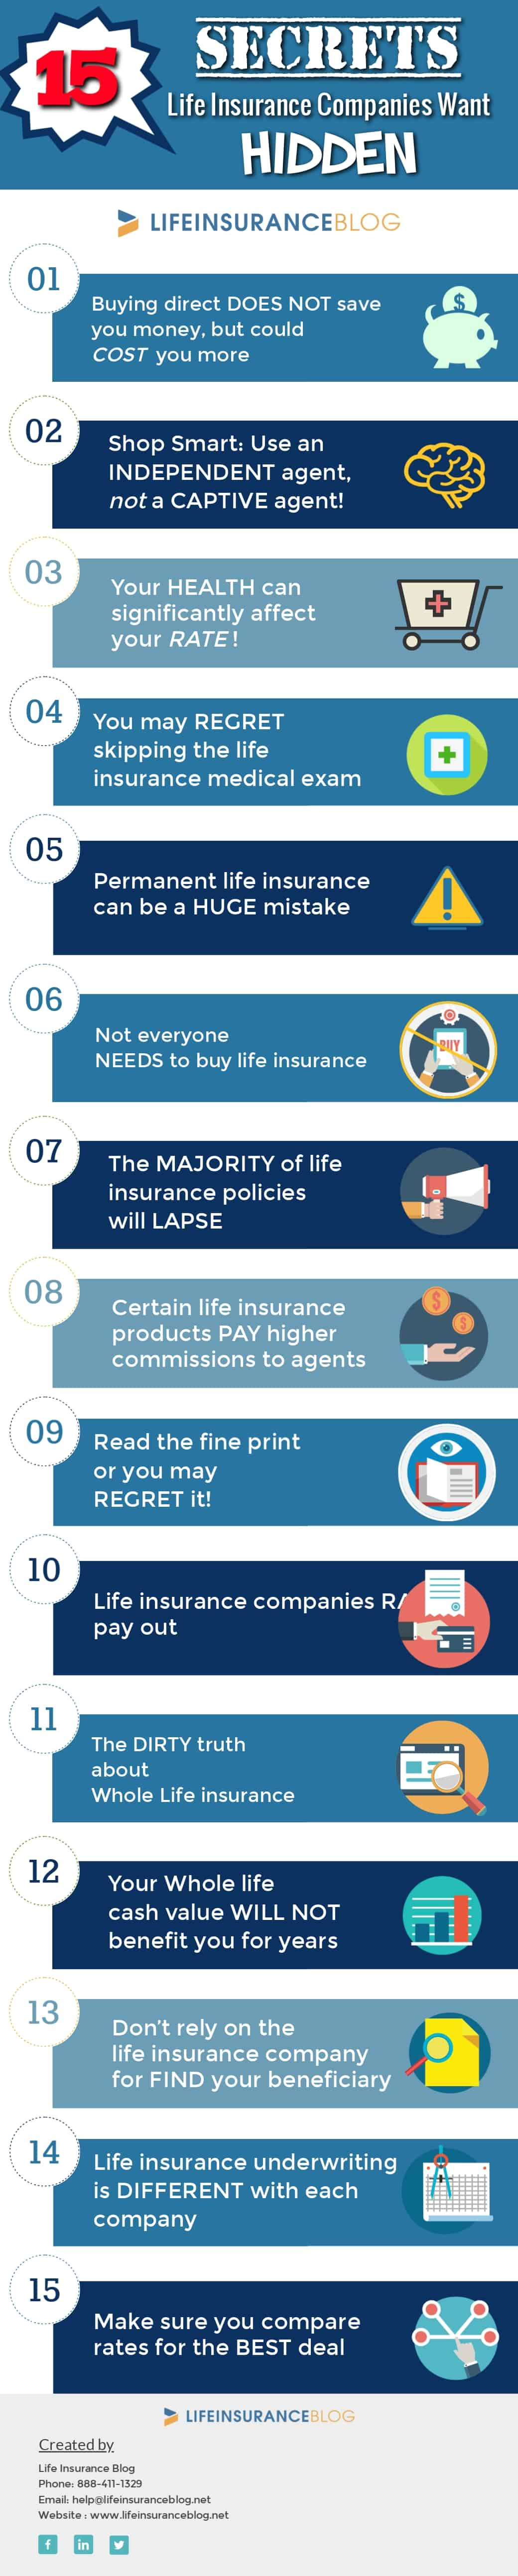 15 Secrets Life Insurance Companies don't want you to know